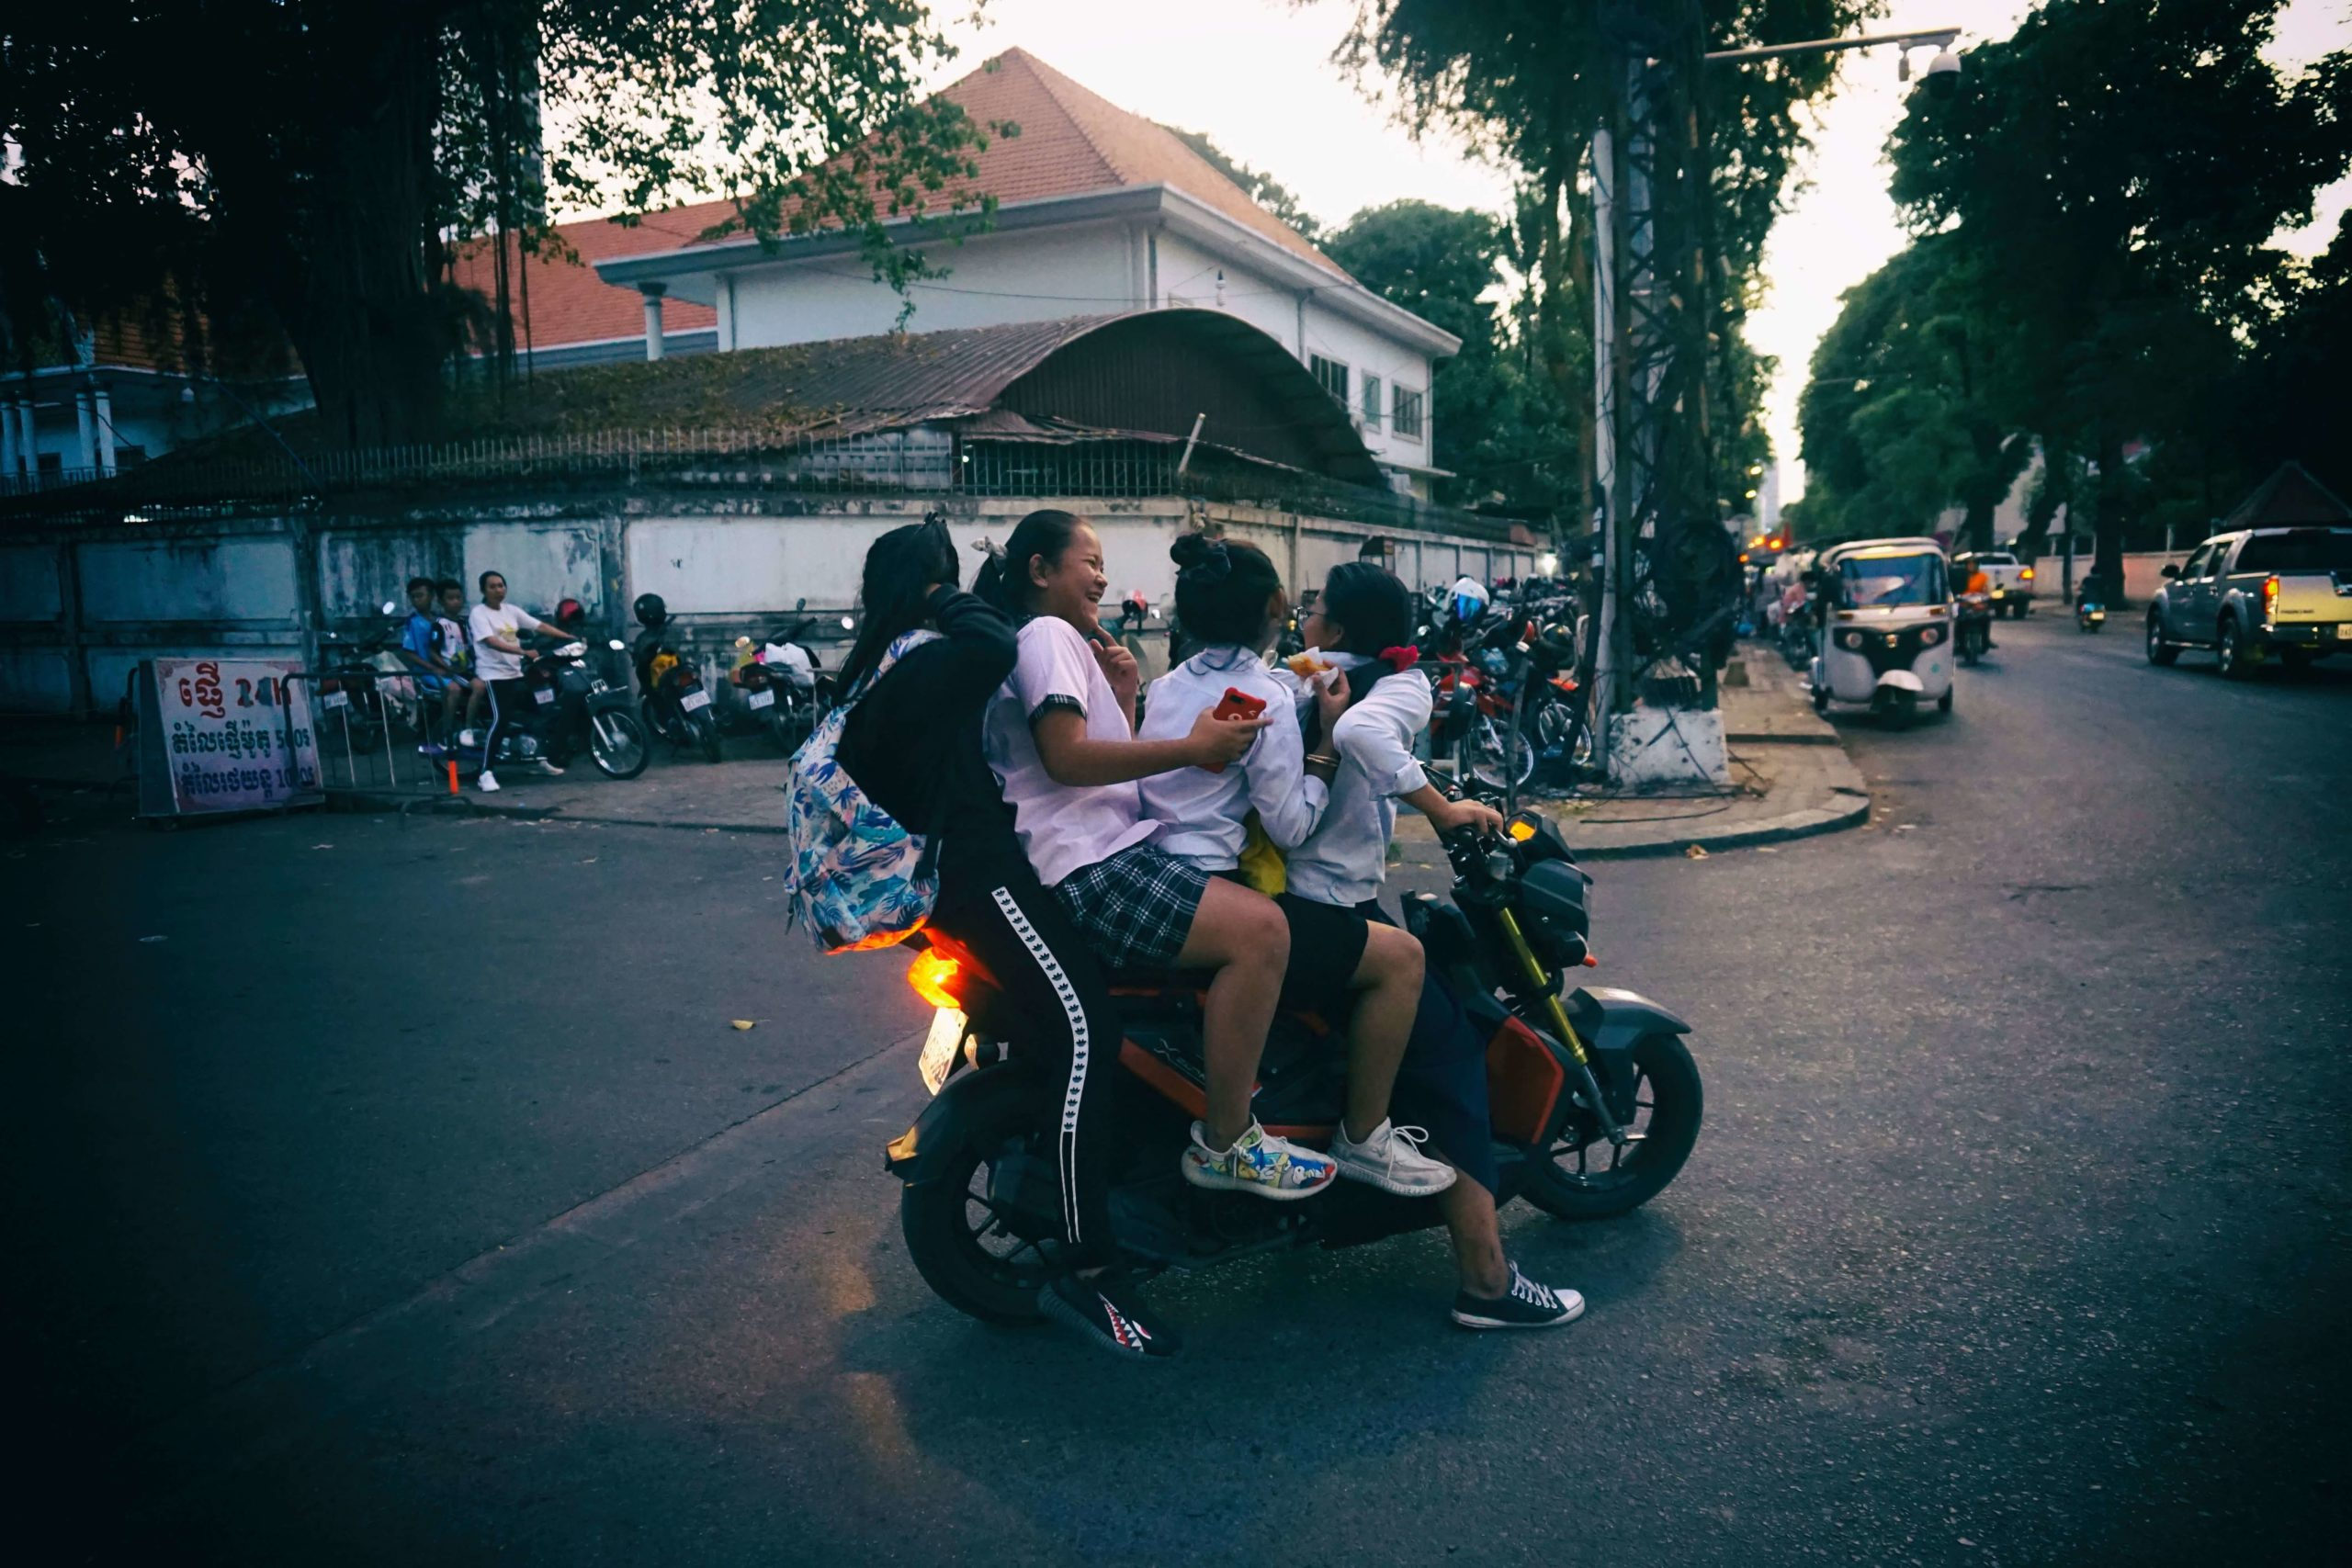 Girls on scooter in Phnom Penh - Cambodia